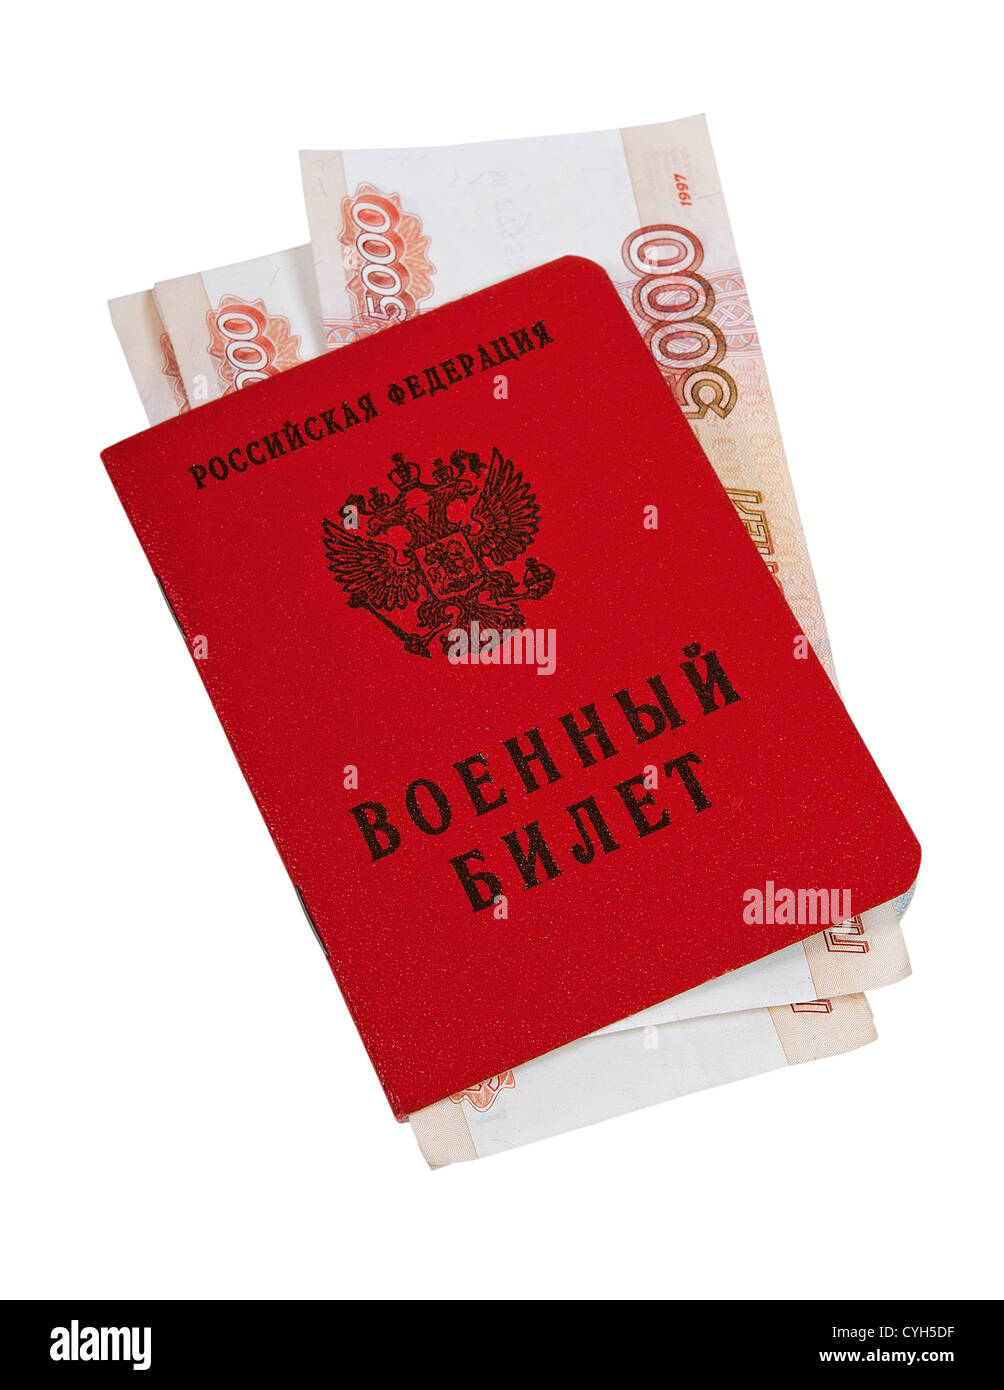 Russian Military ID and banknotes on white background - Stock Image